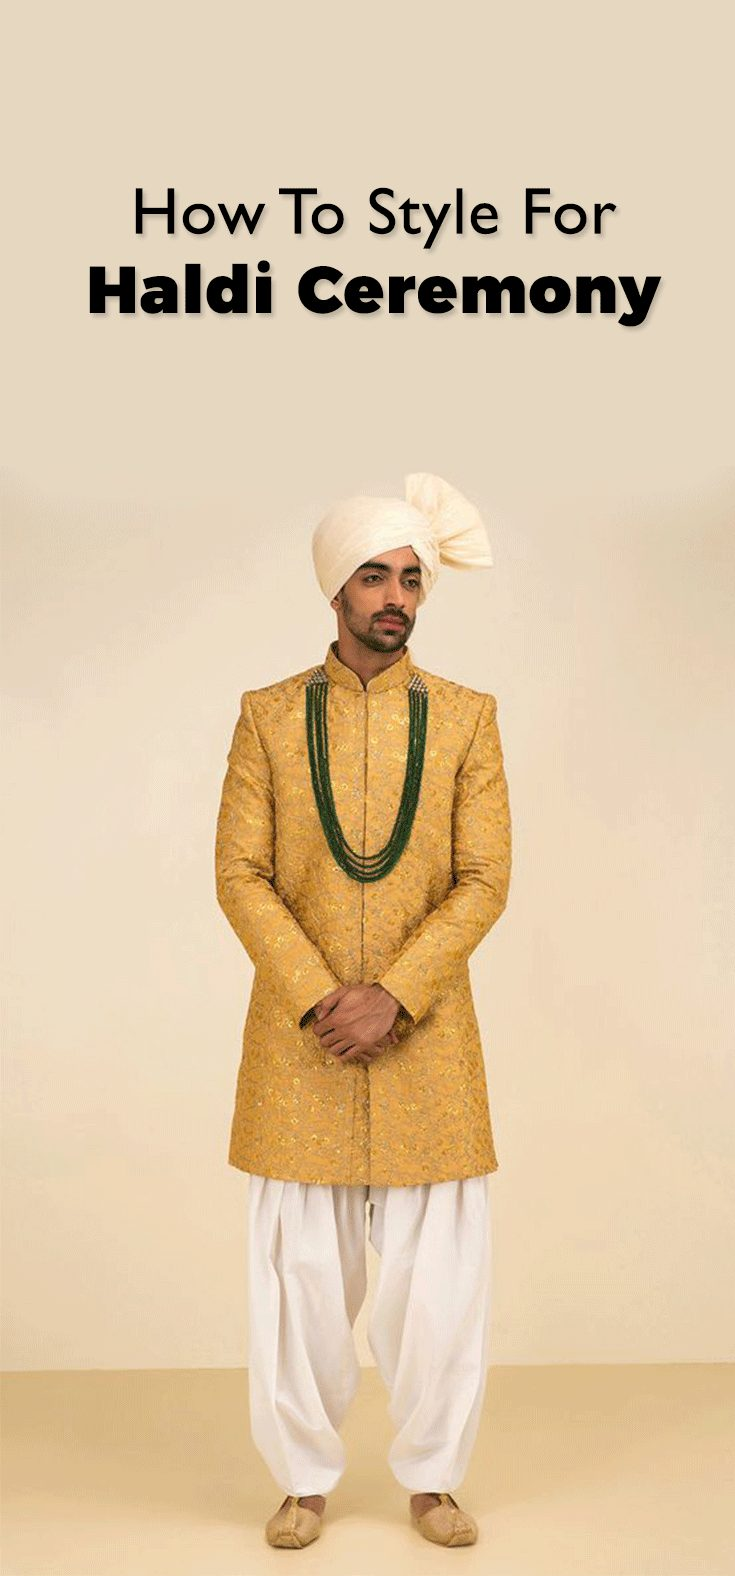 How To Decide What Should Men Wear During Haldi Ceremony